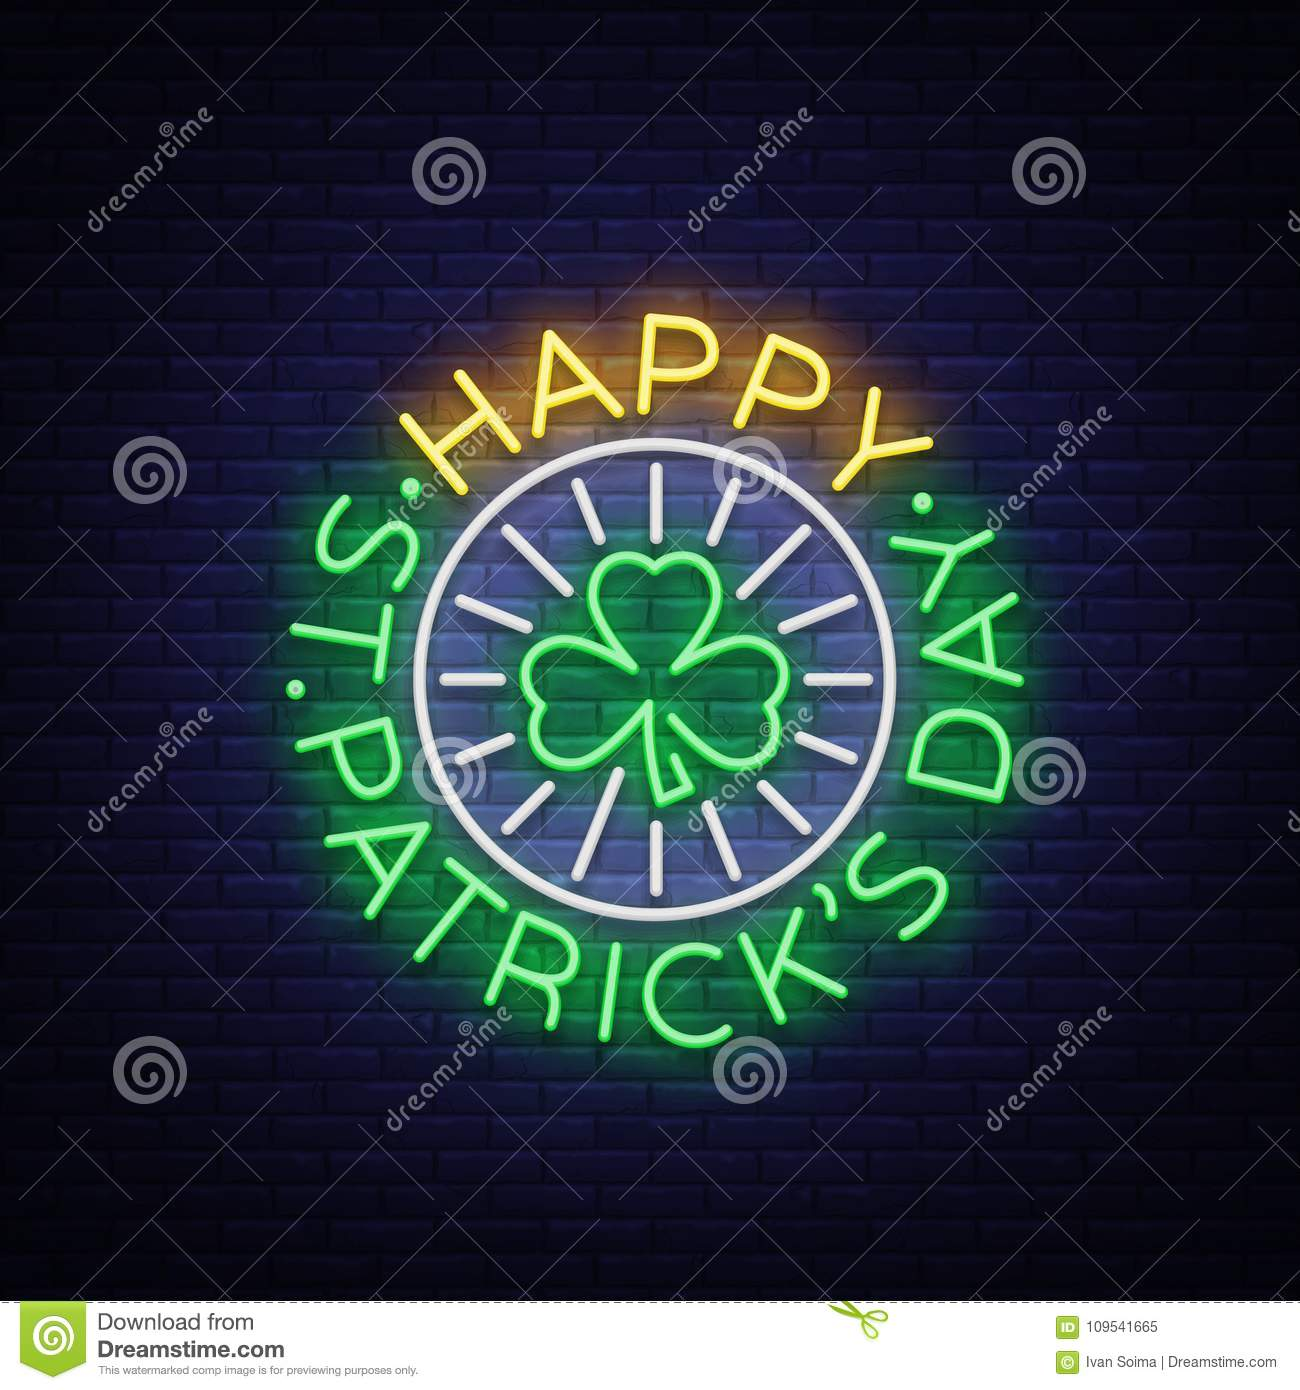 St patricks day vector neon sign logo invitation symbol greeting download st patricks day vector neon sign logo invitation symbol greeting card stopboris Image collections